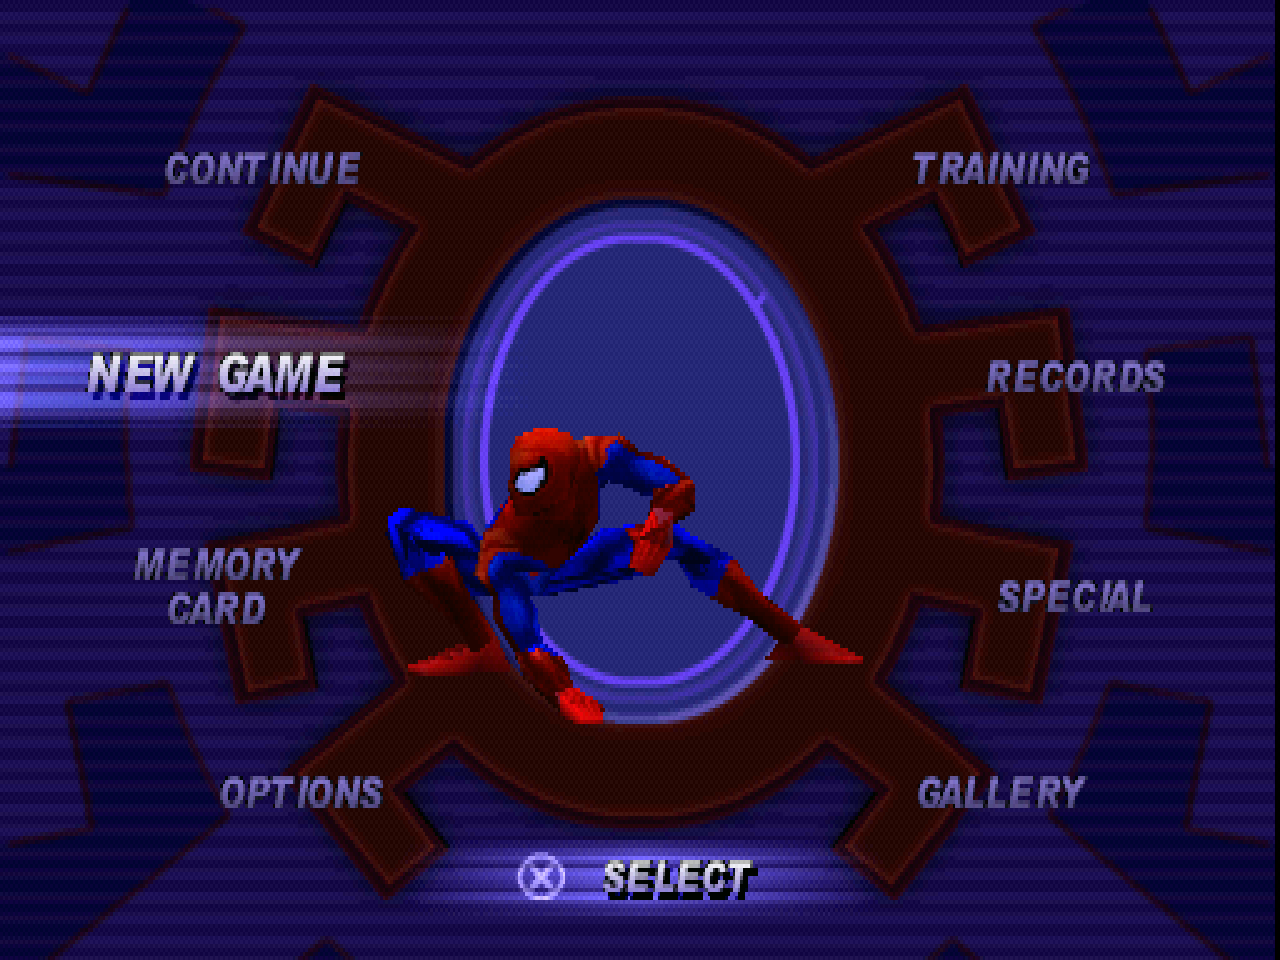 https://s3.eu-west-3.amazonaws.com/games.anthony-dessalles.com/Spider-Man PS1 2020 - Screenshots/Spider-Man-201125-182622.png